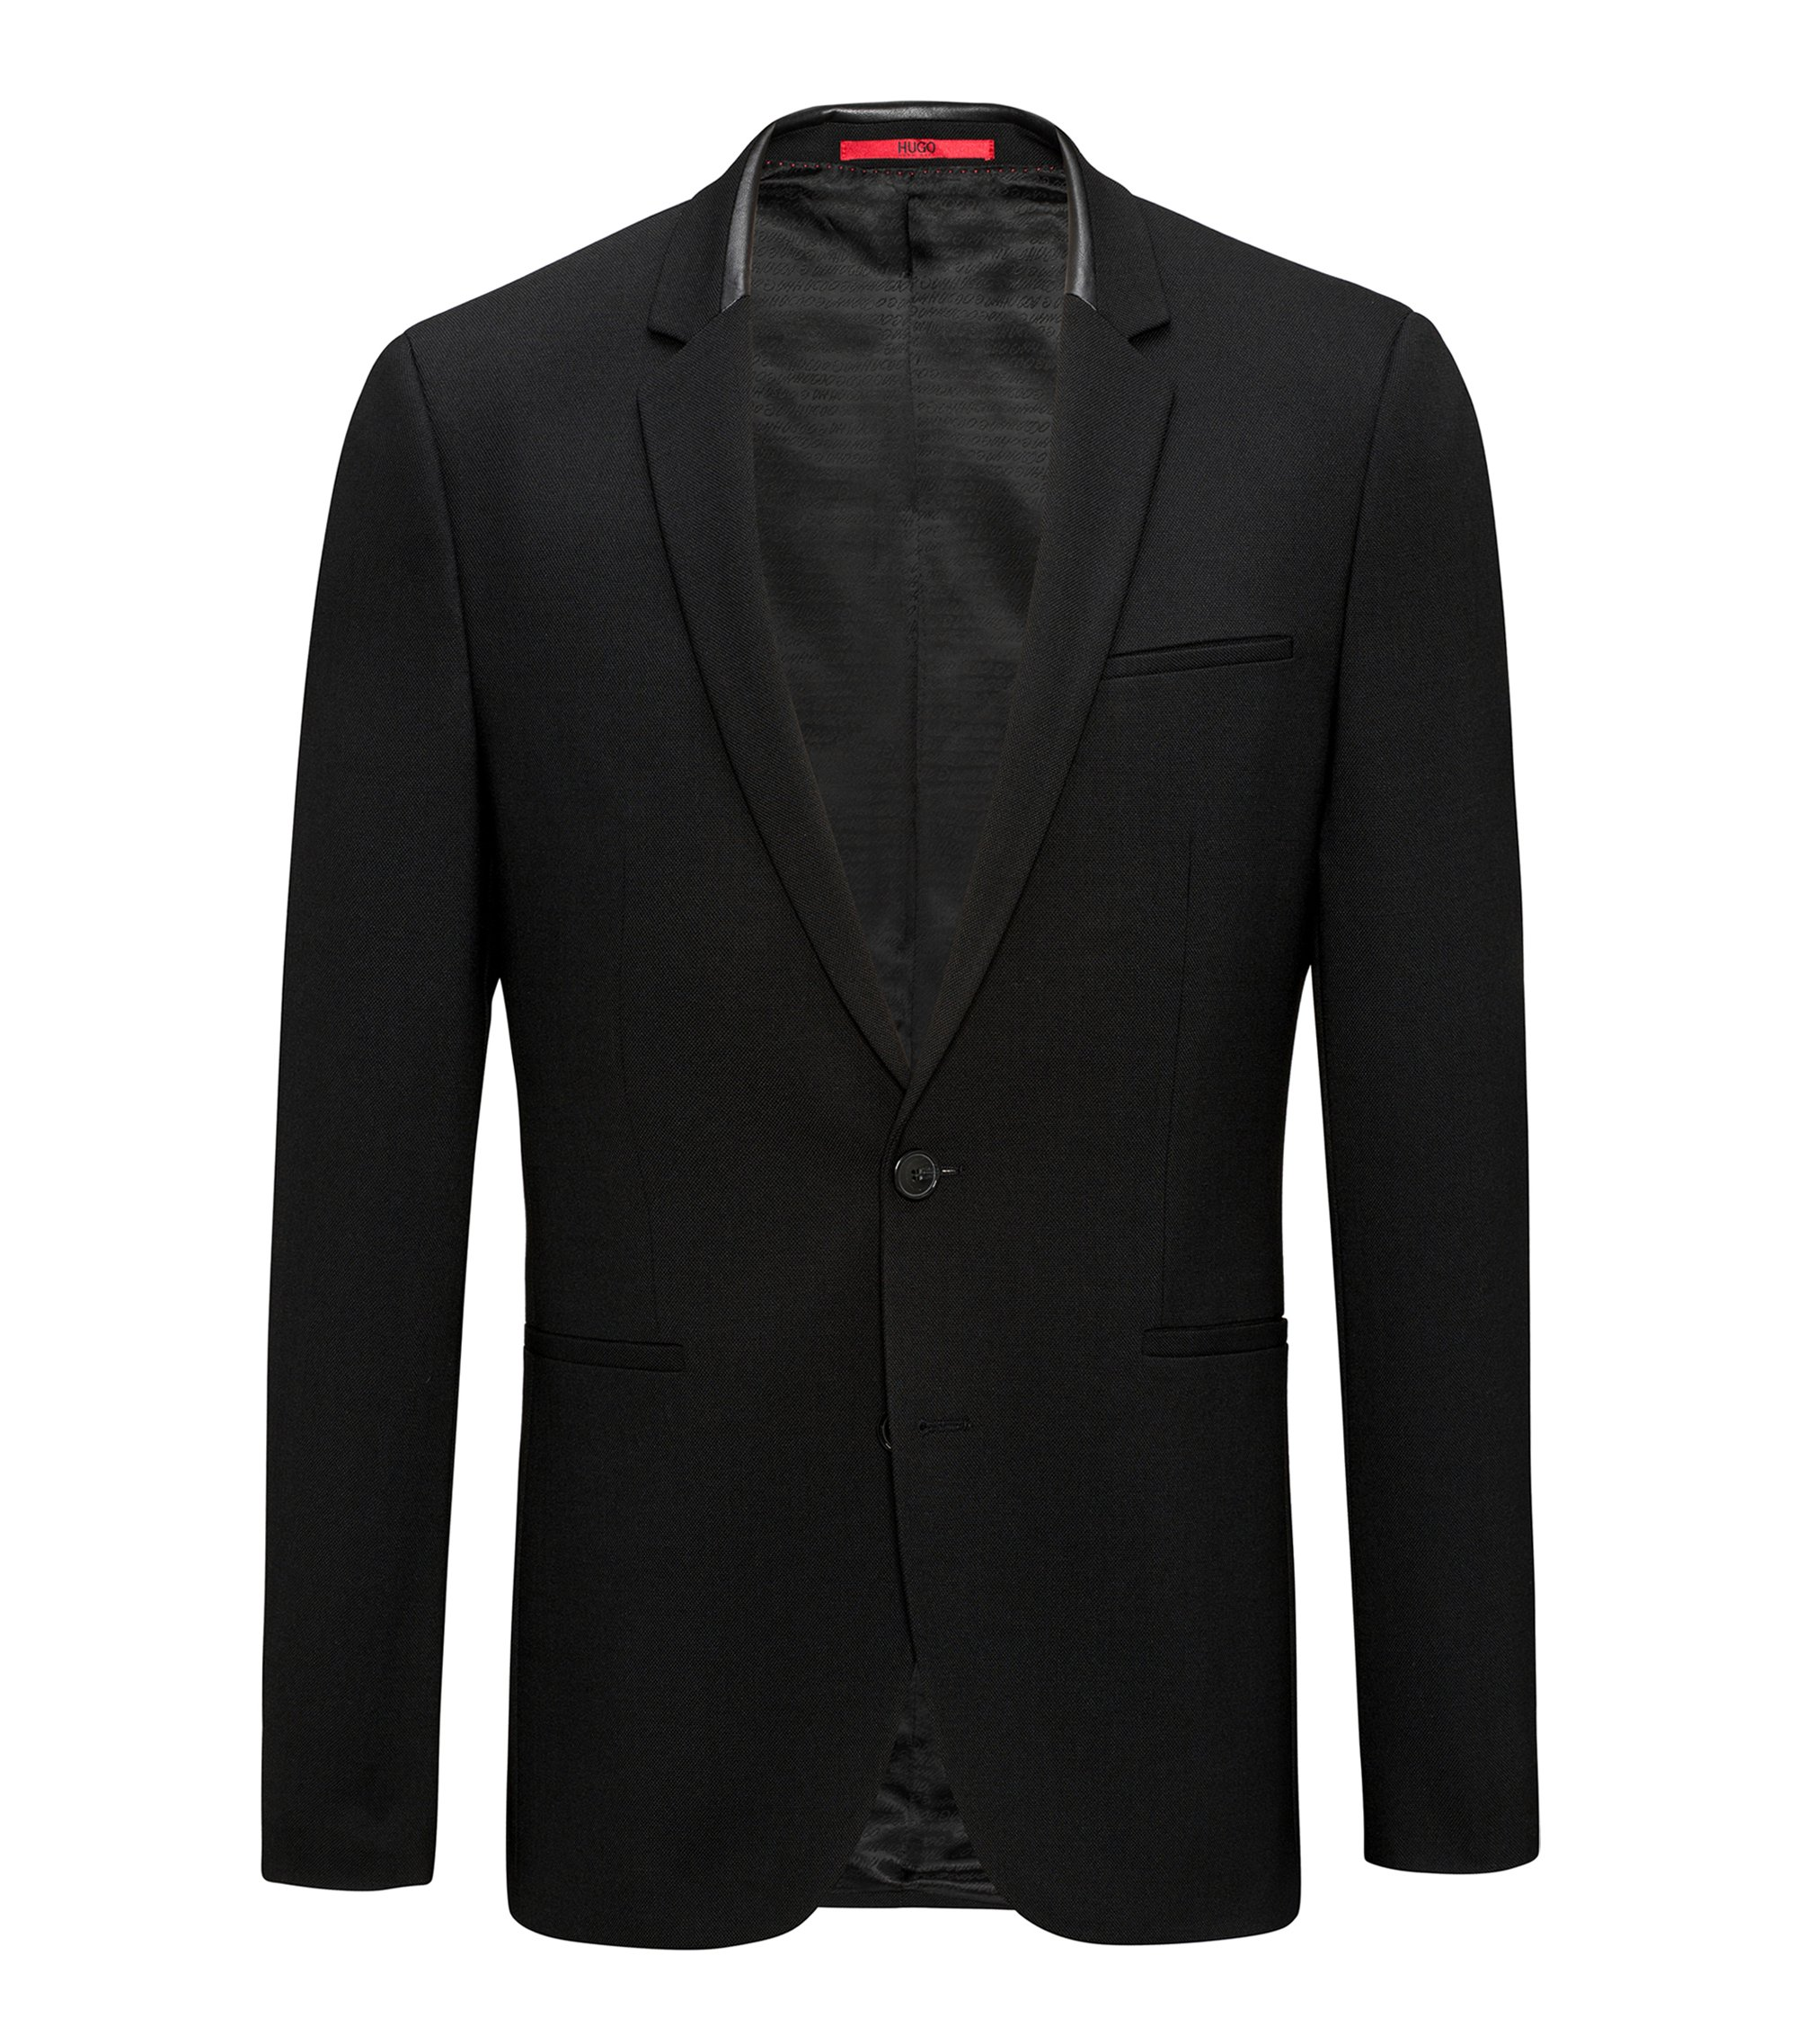 Extra-slim-fit jacket in comfort-stretch fabric, Black